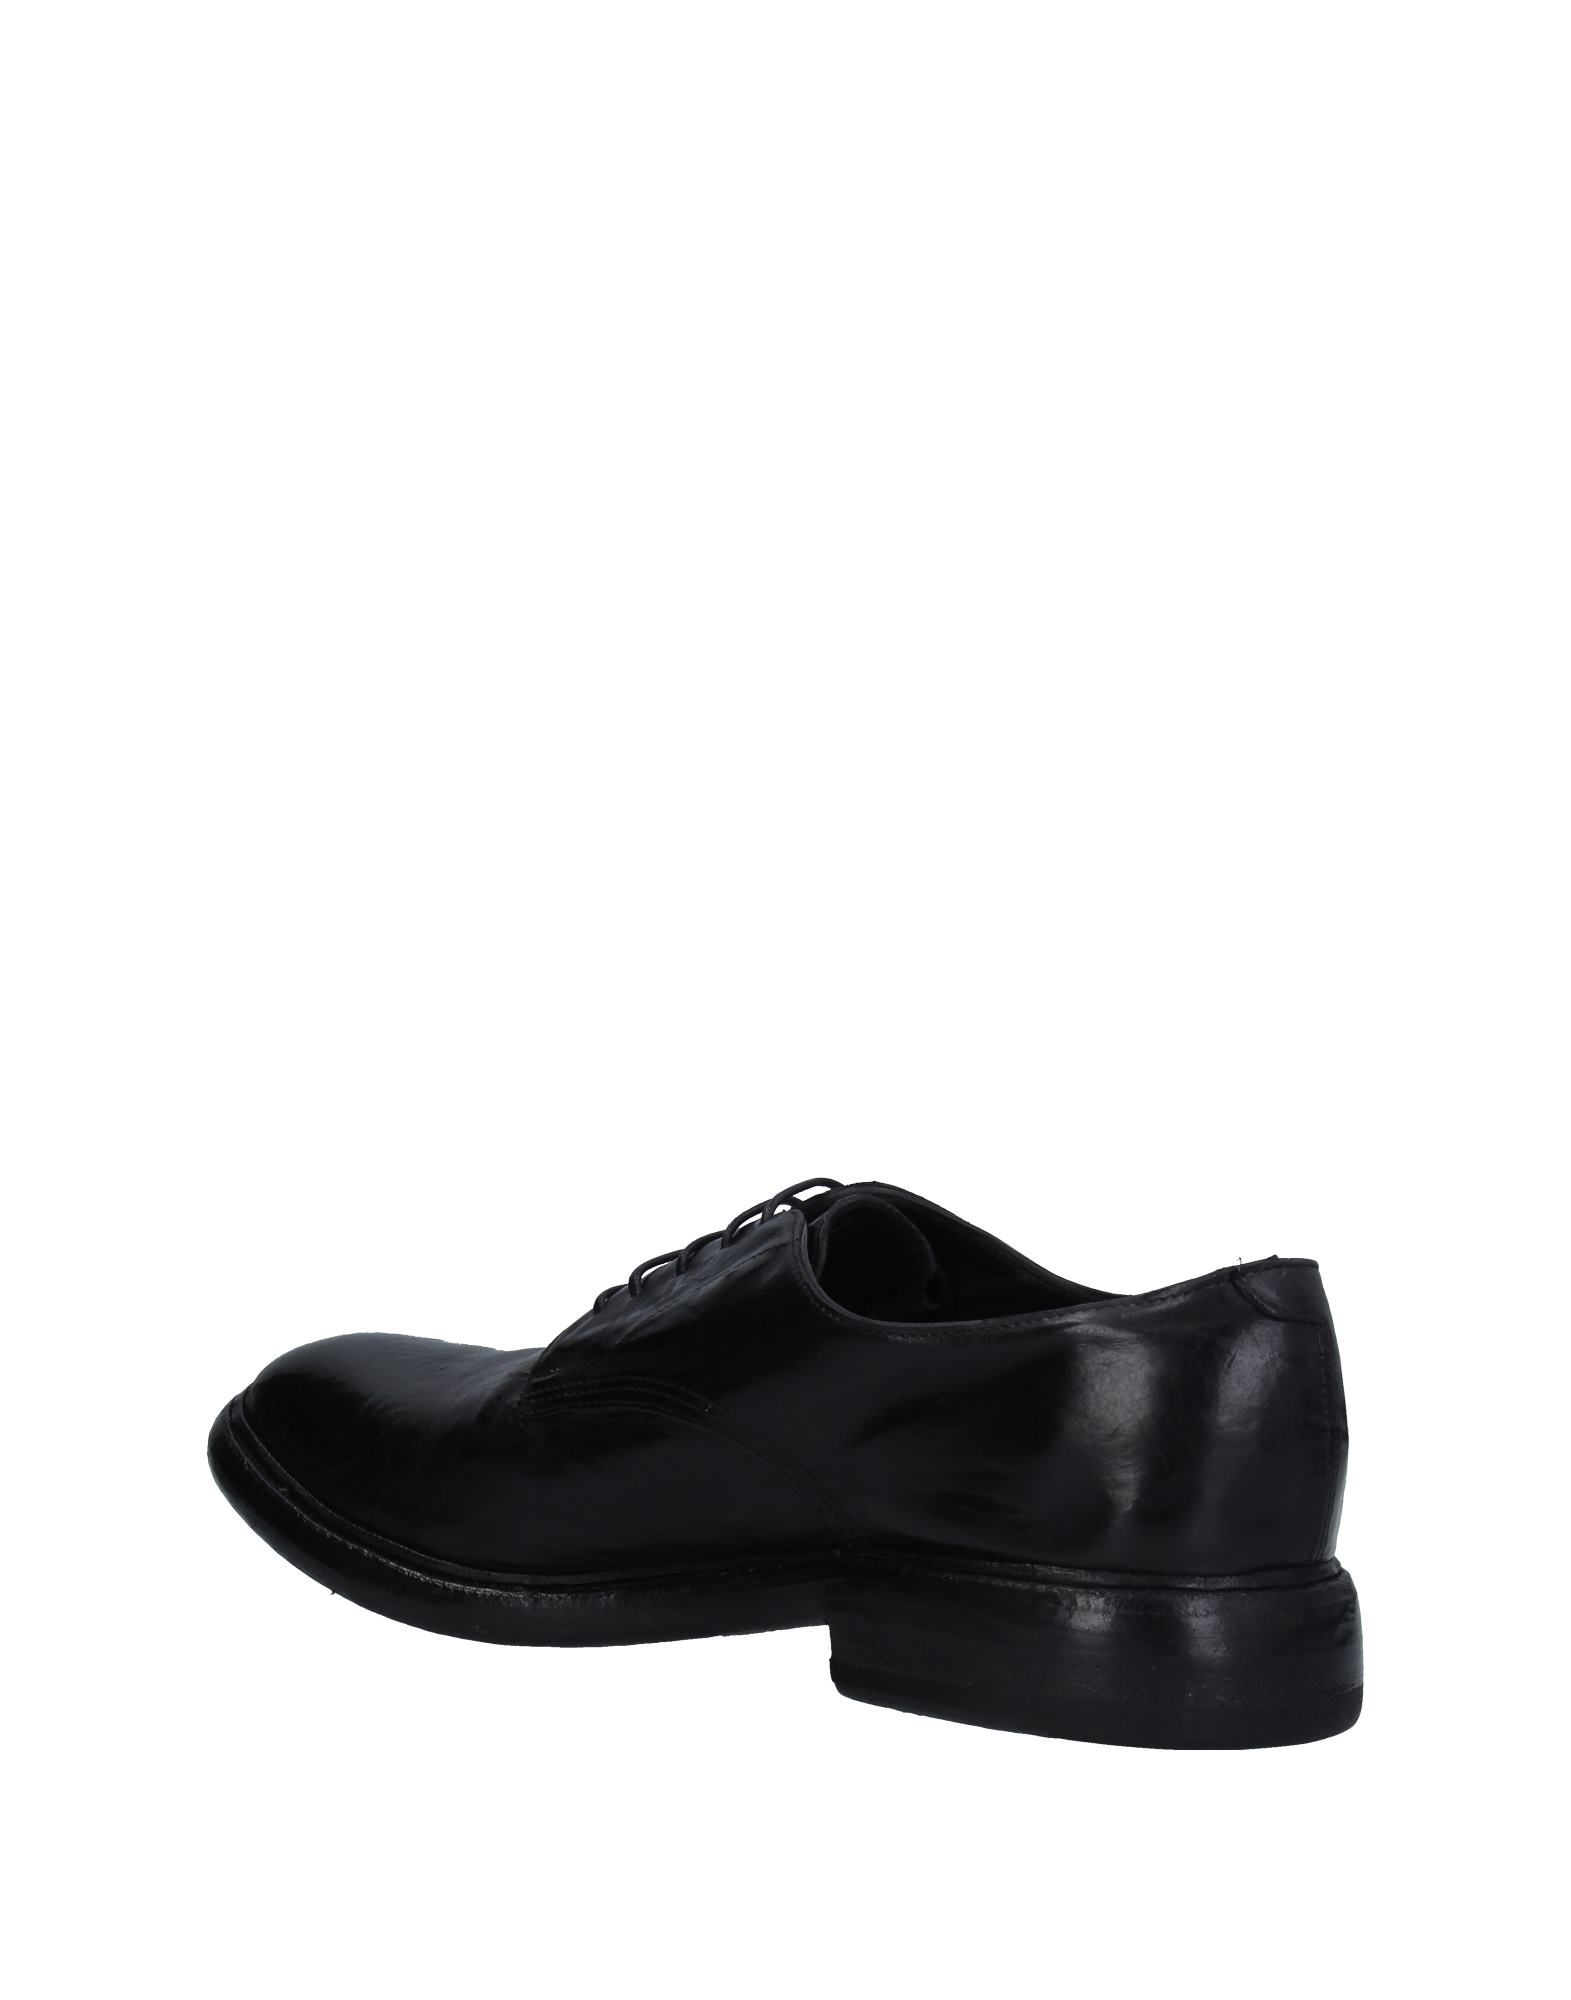 Chaussures À Lacets Preventi Homme - Chaussures À Lacets Preventi sur